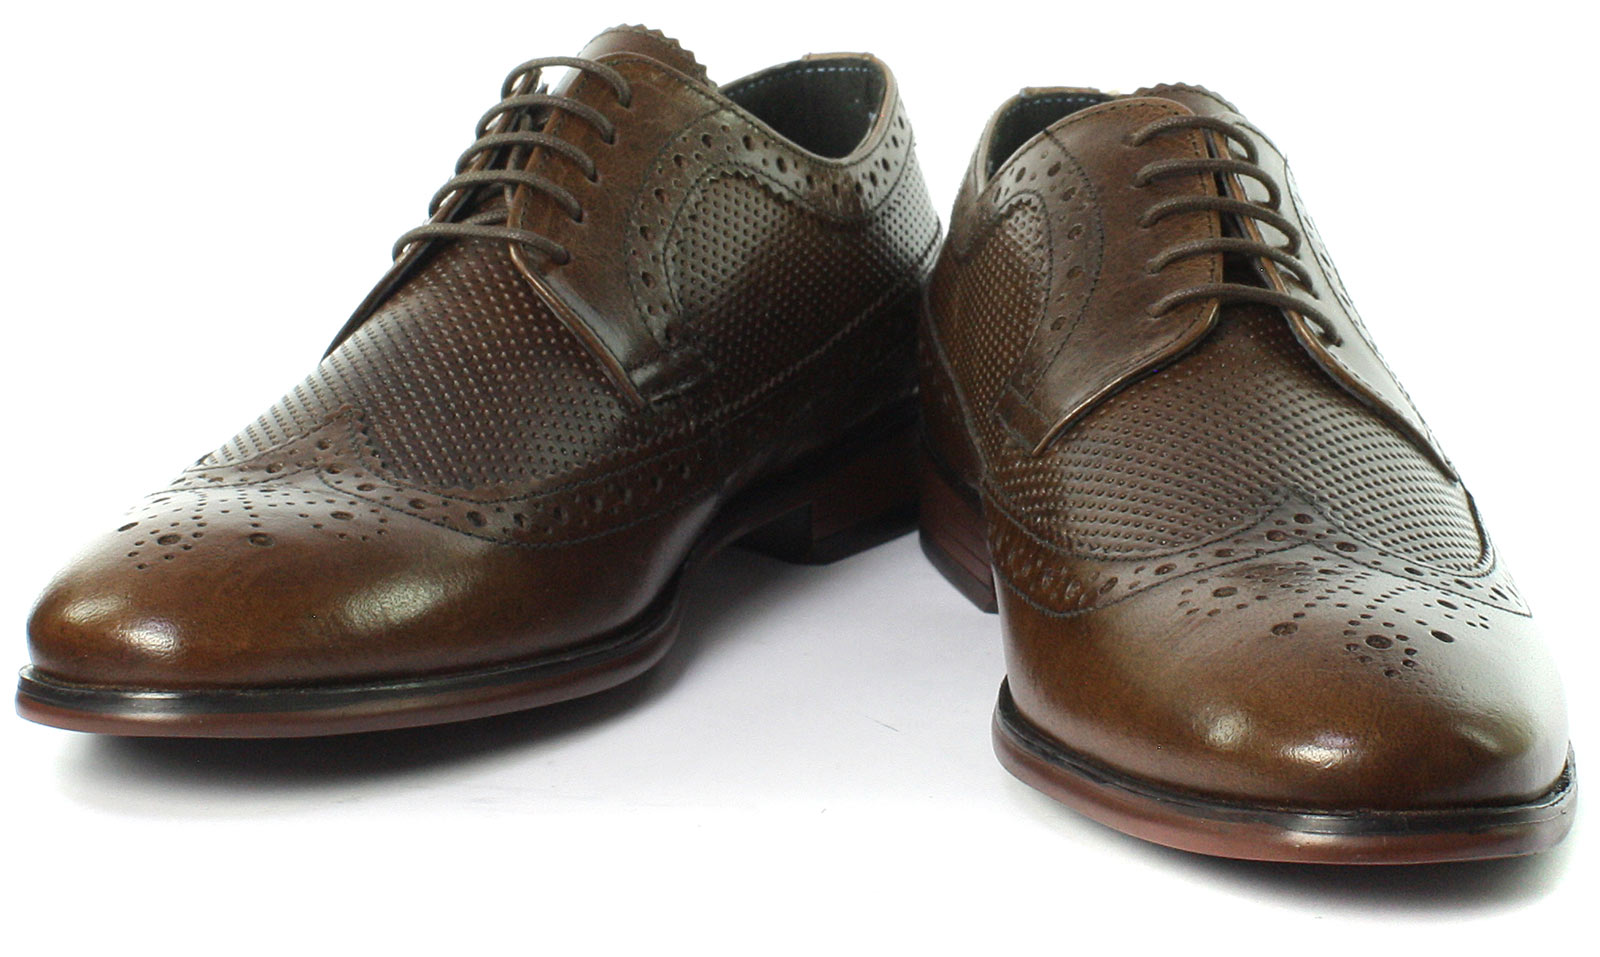 Mens Red Tape lacets Brogue Tailles Chaussures Toutes Brown Nappa New à 3RqAL45j